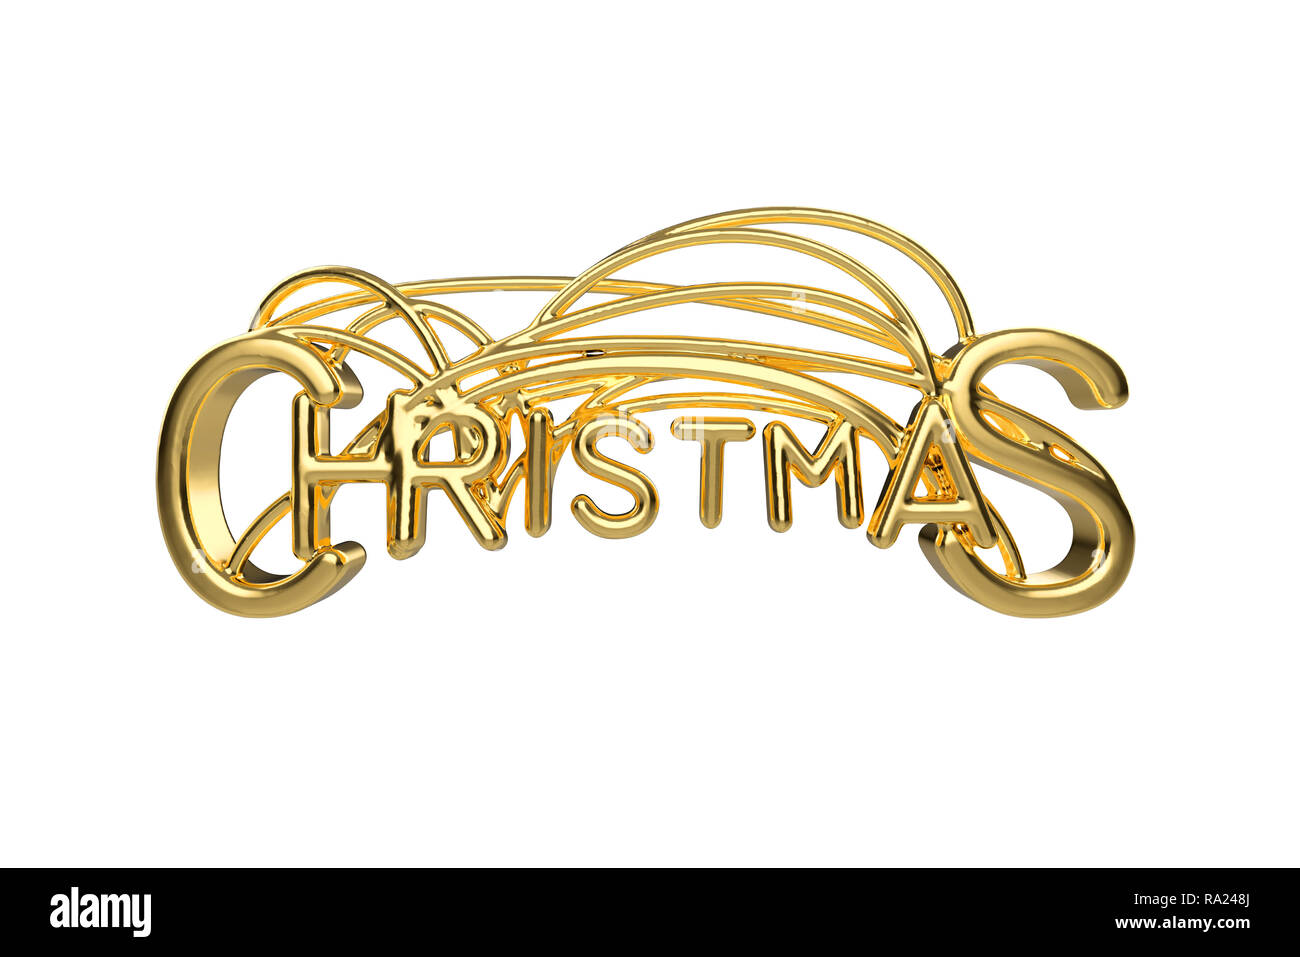 Christmas Elegant Golden Lettering Word With Letters Bound